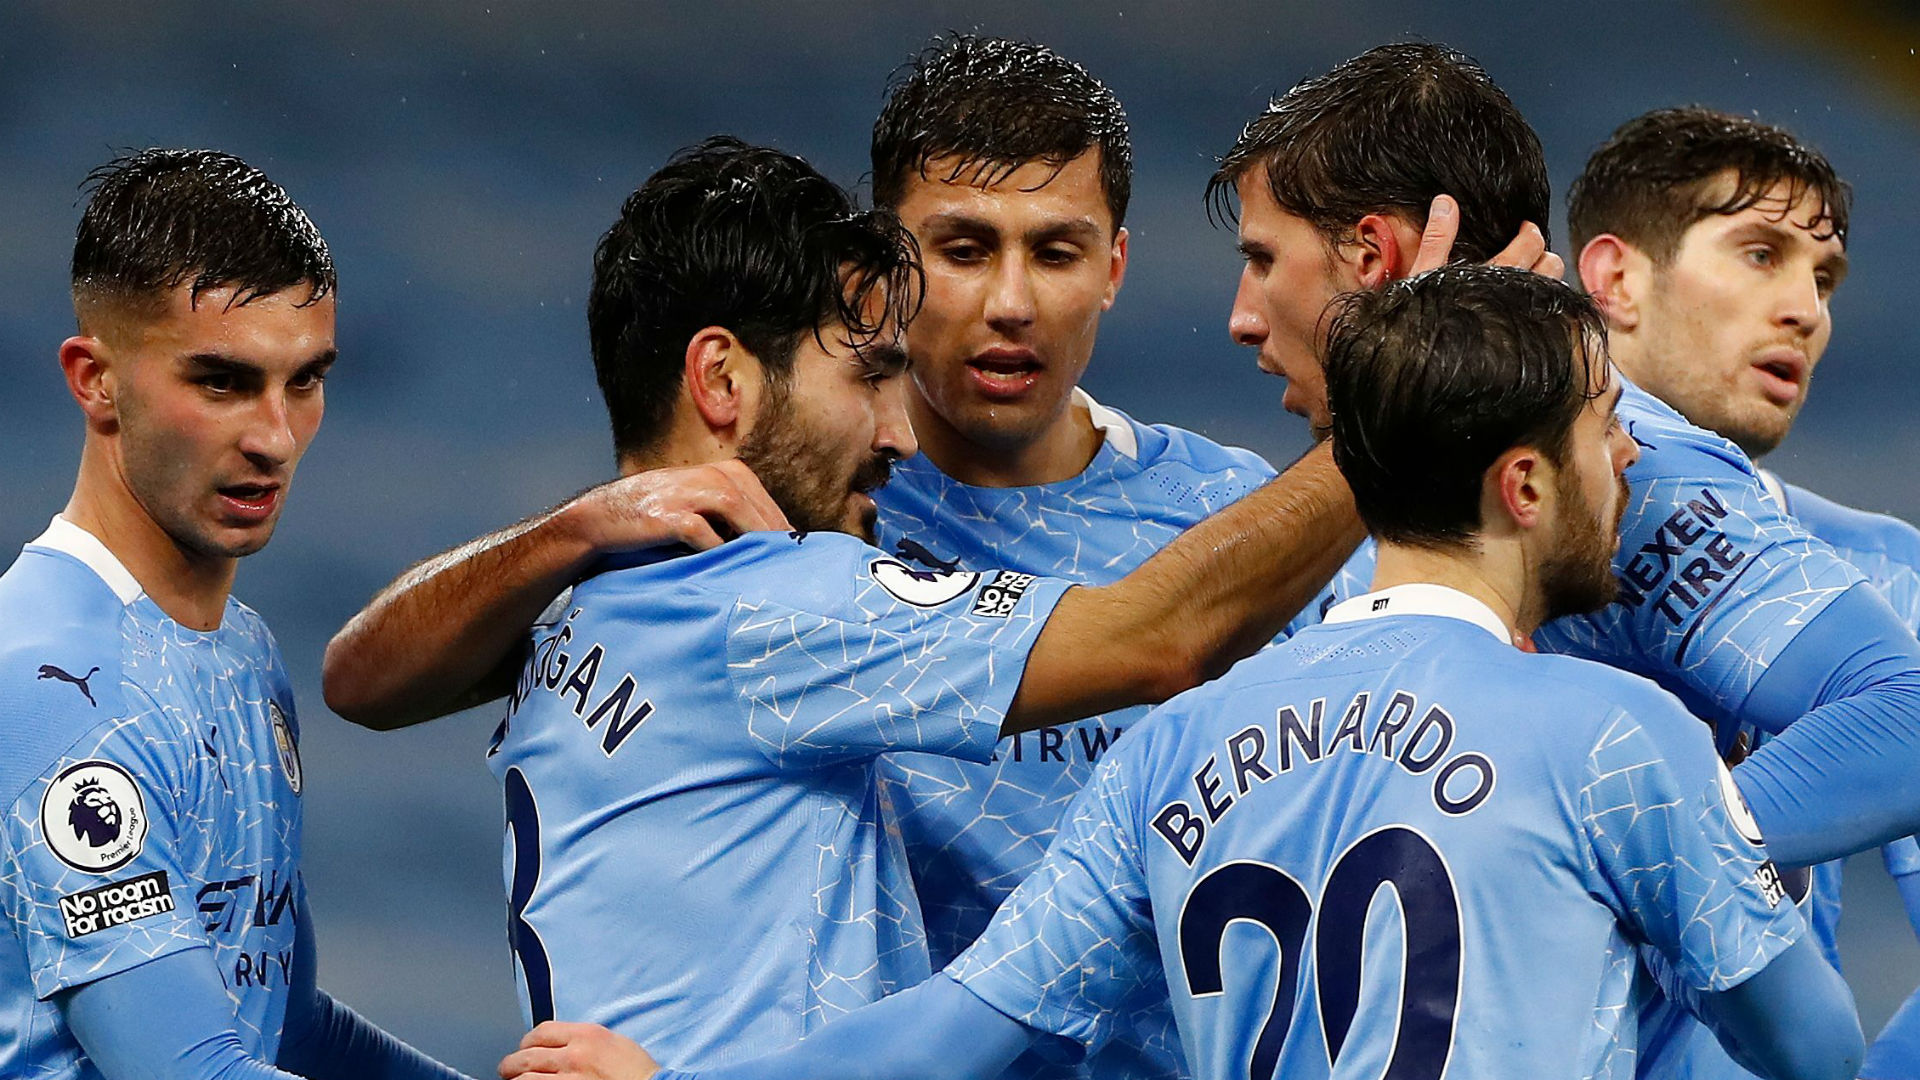 'I don't shine, I allow others to' – Gundogan aware of his place in Man City's galaxy of stars